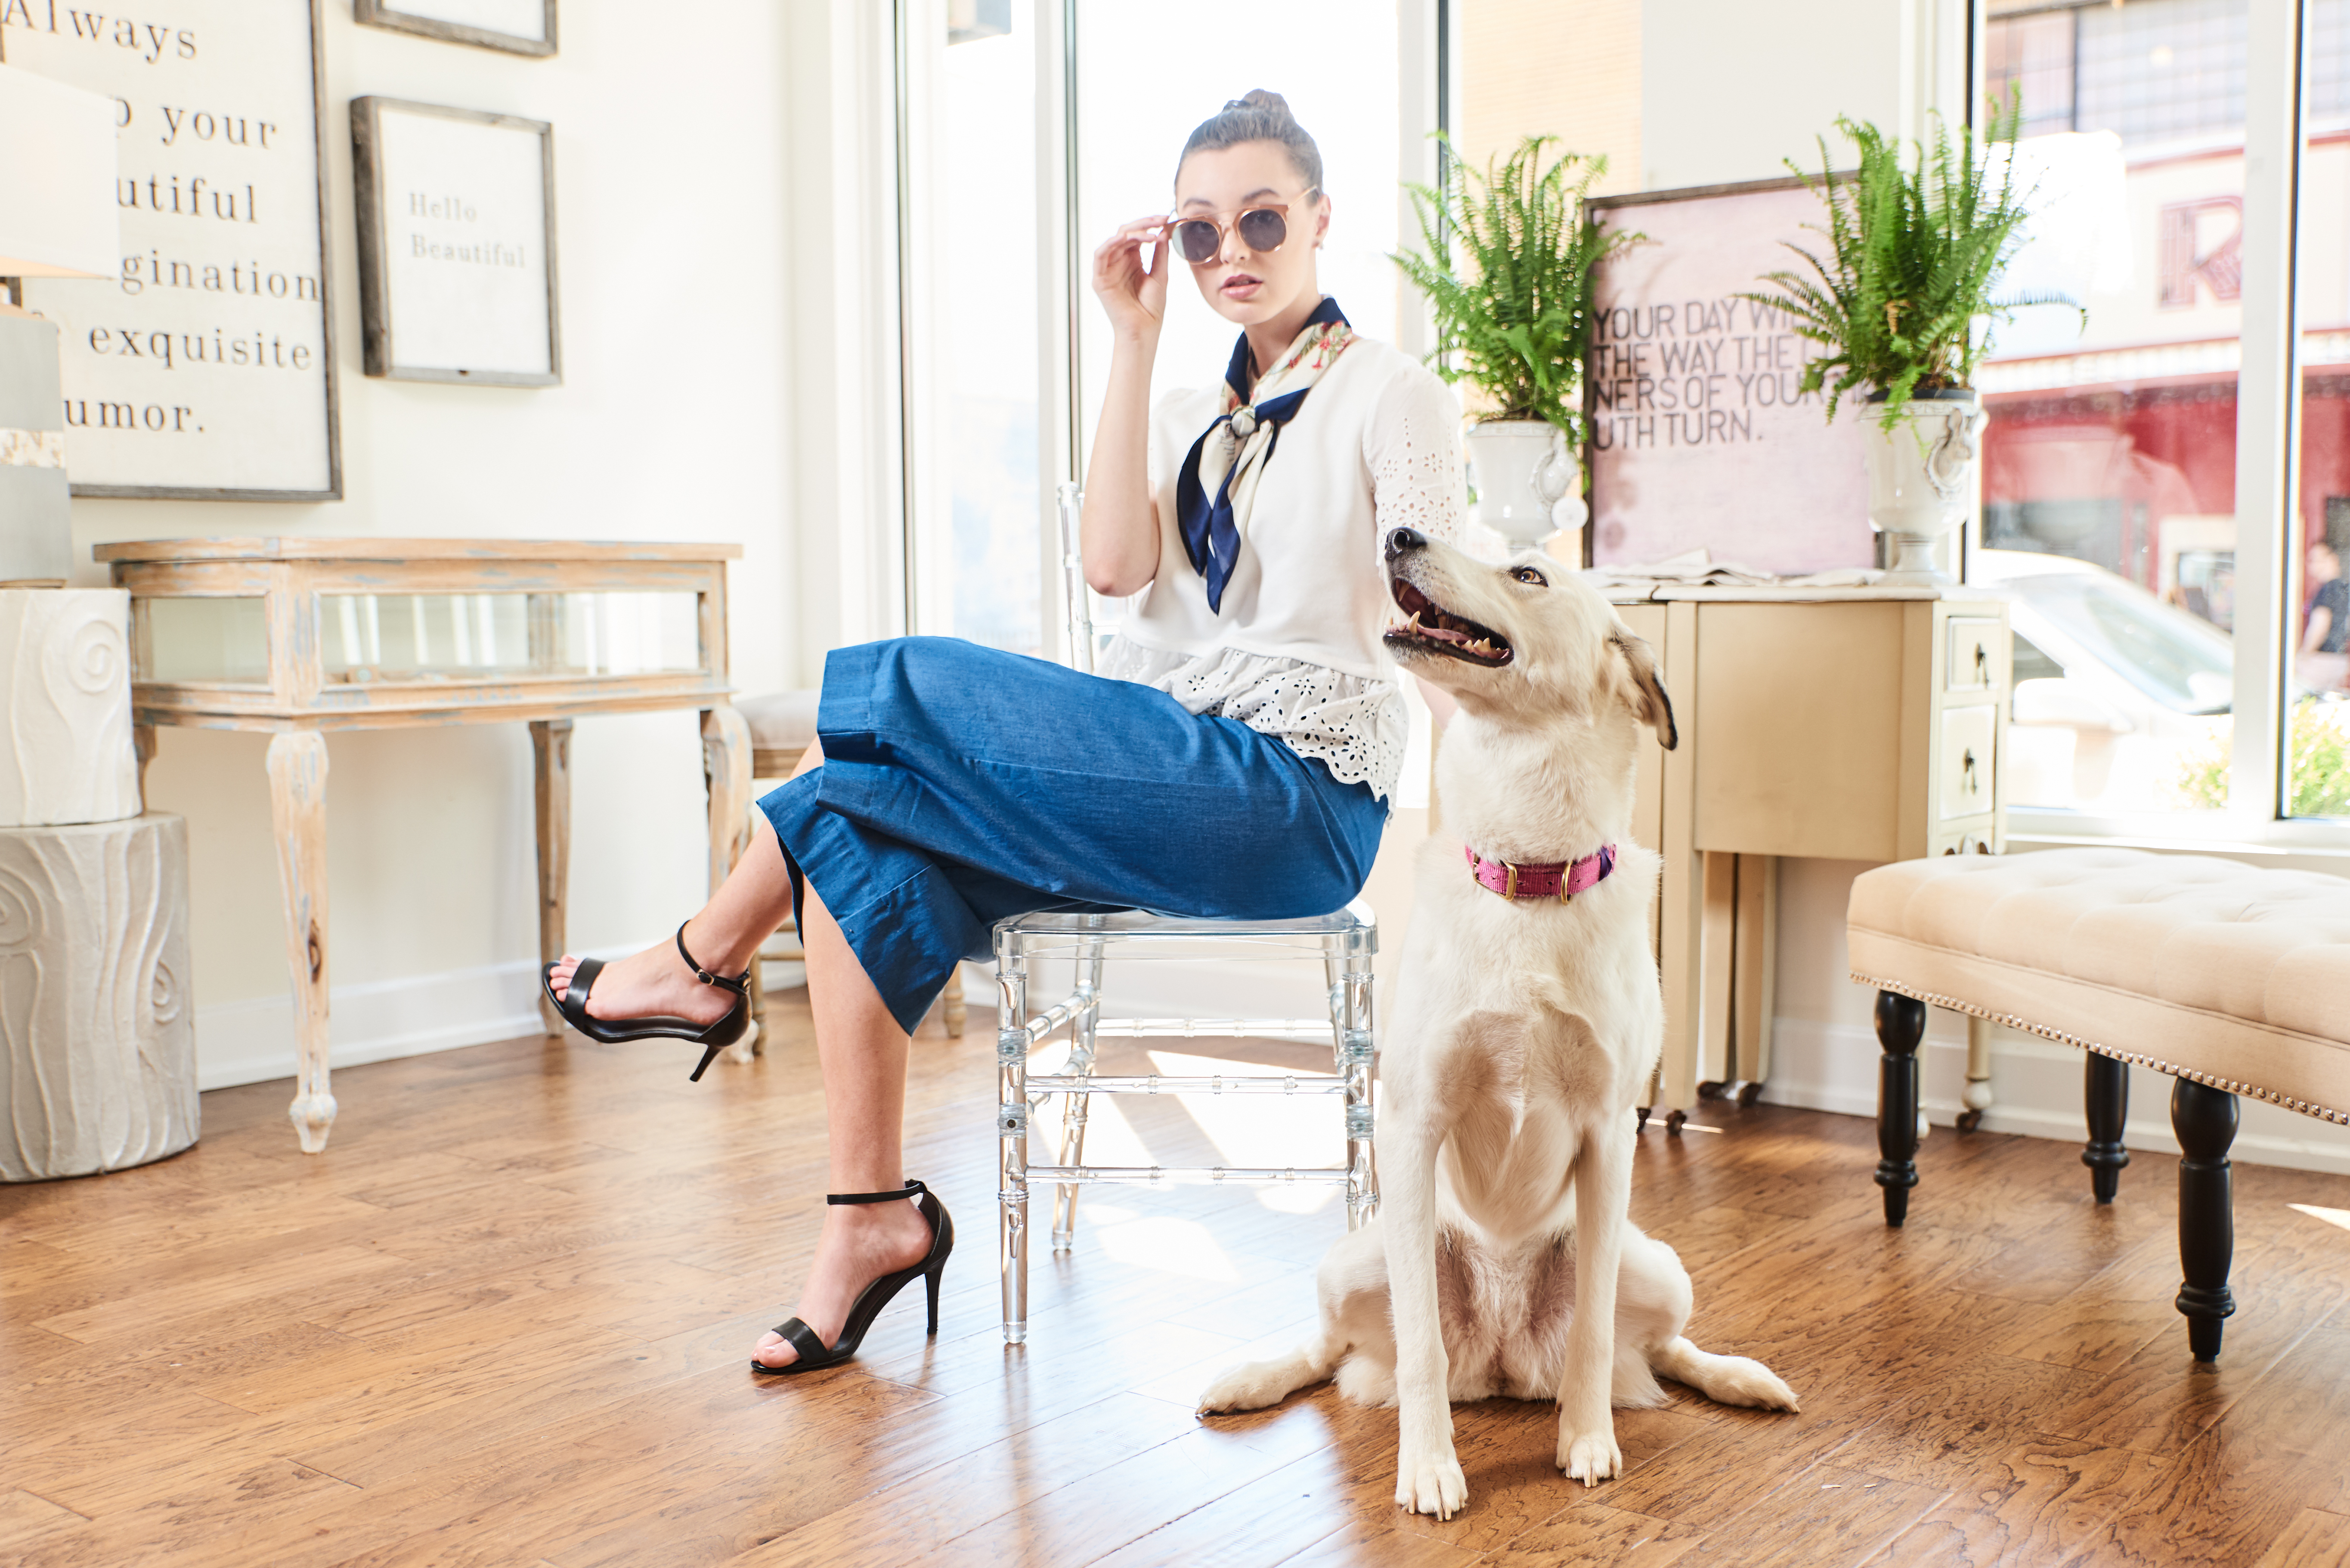 Nashville Fashion Photographer Commercial Editorial photoshoot pretty teen with dog posing for boutique